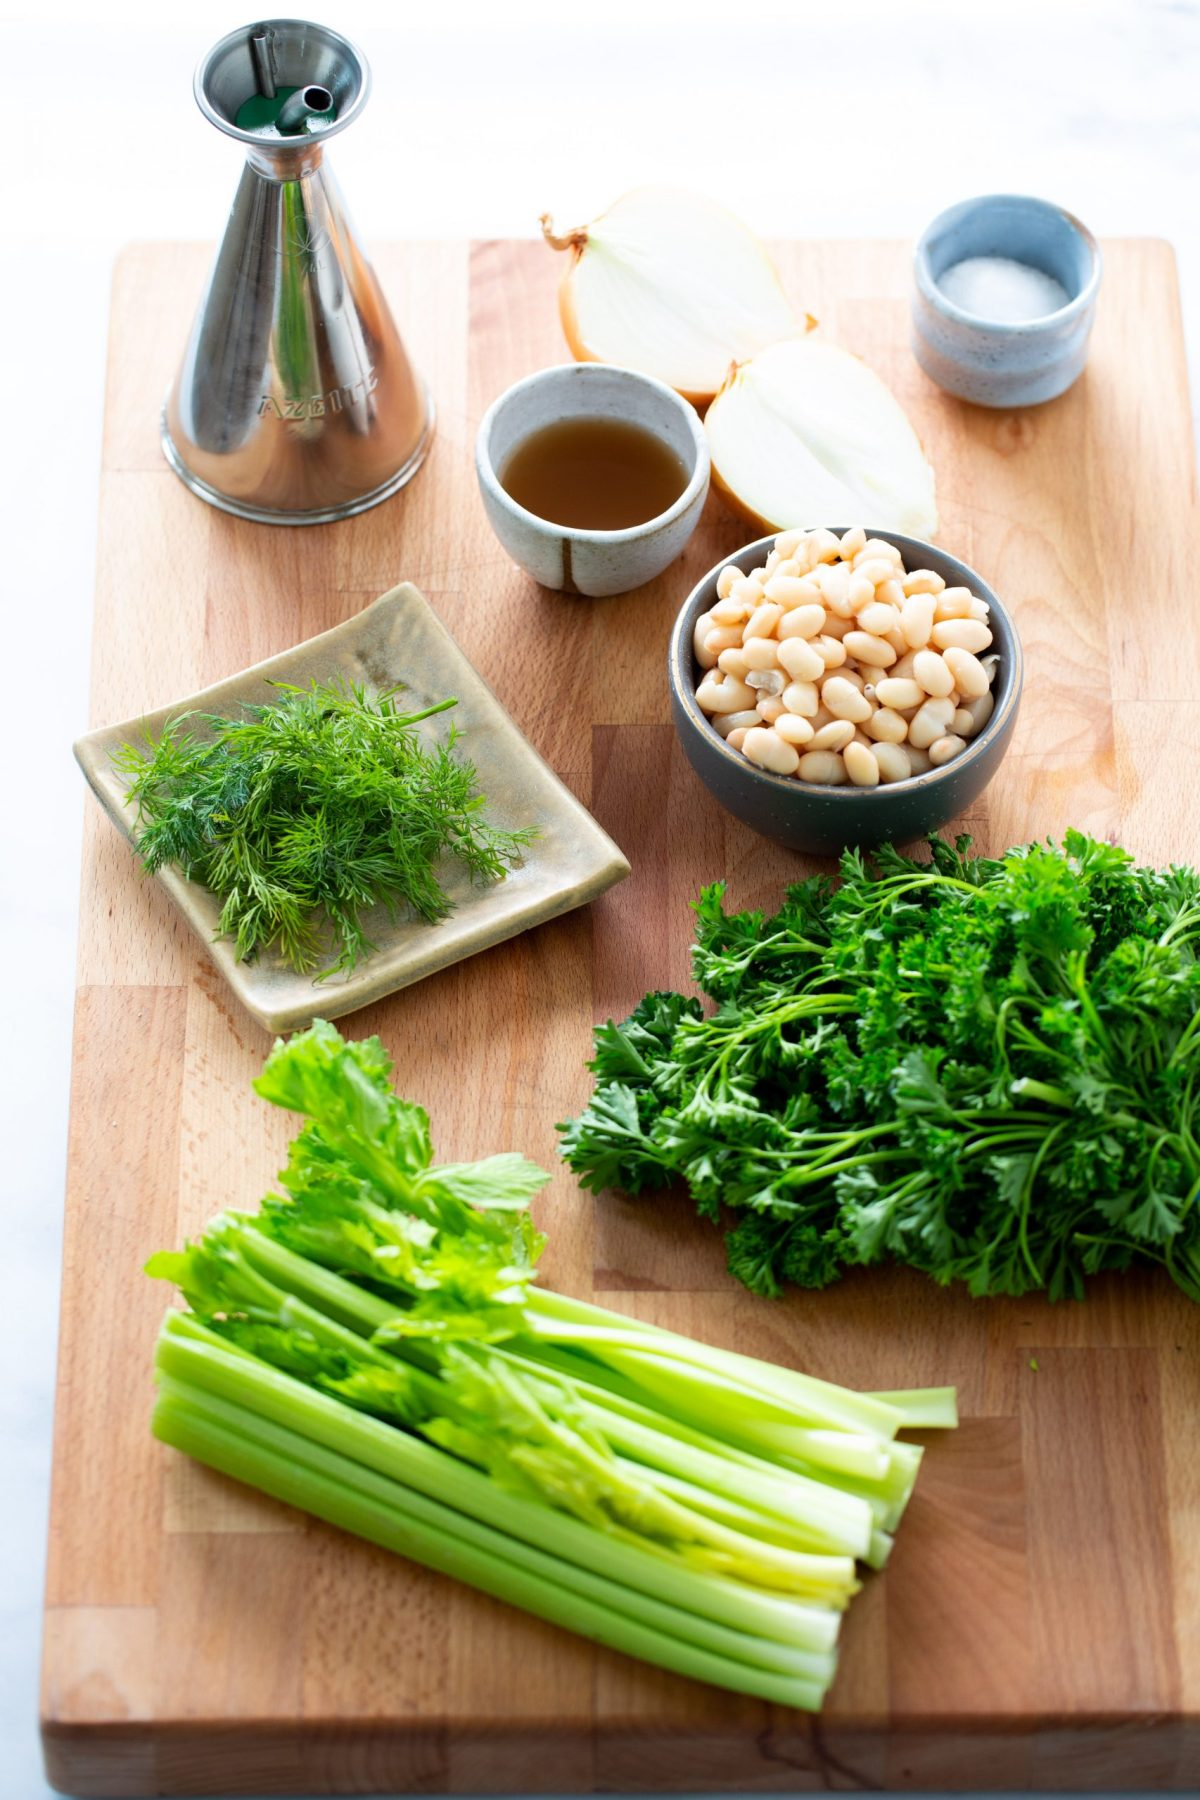 Ingredients to make perfect celery salad